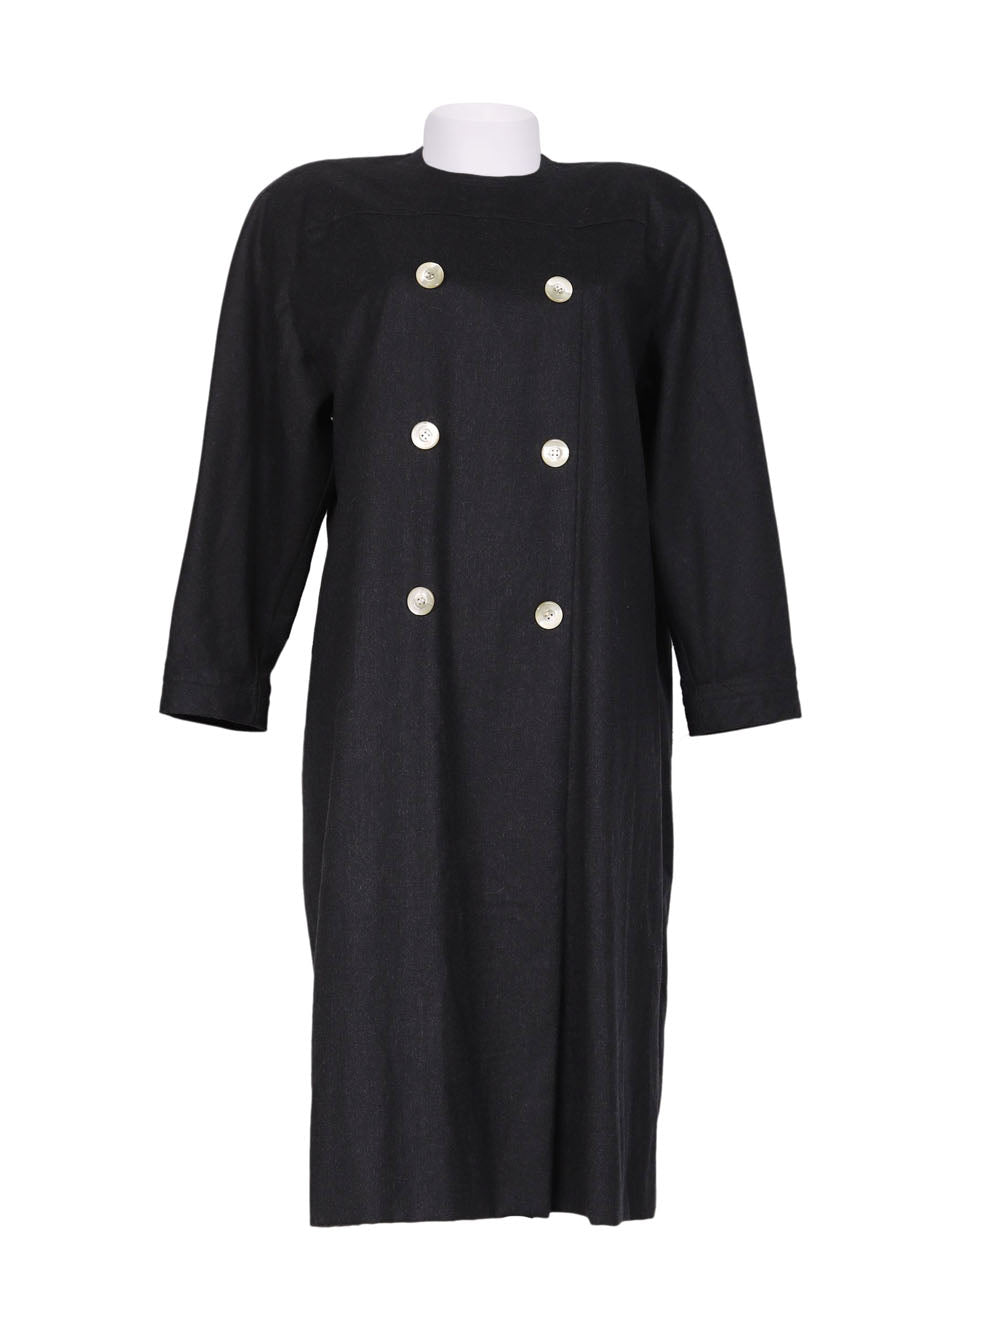 Front photo of Preloved Max Mara Black Woman's dress - size 10/M